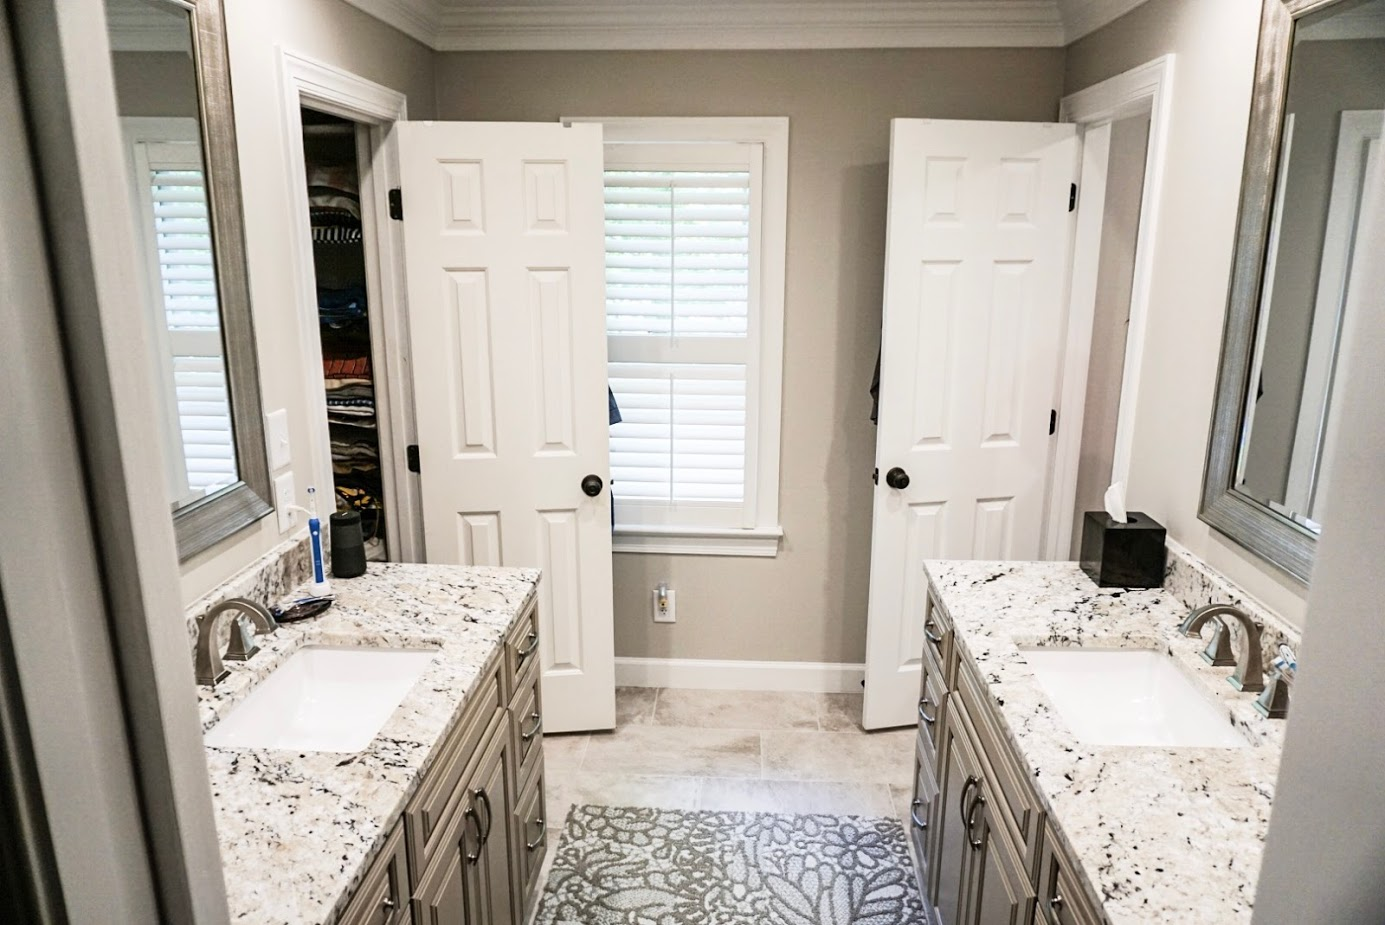 Dual Bathroom Vanities With Granite Counter Tops and Tile Flooring, Apex NC.